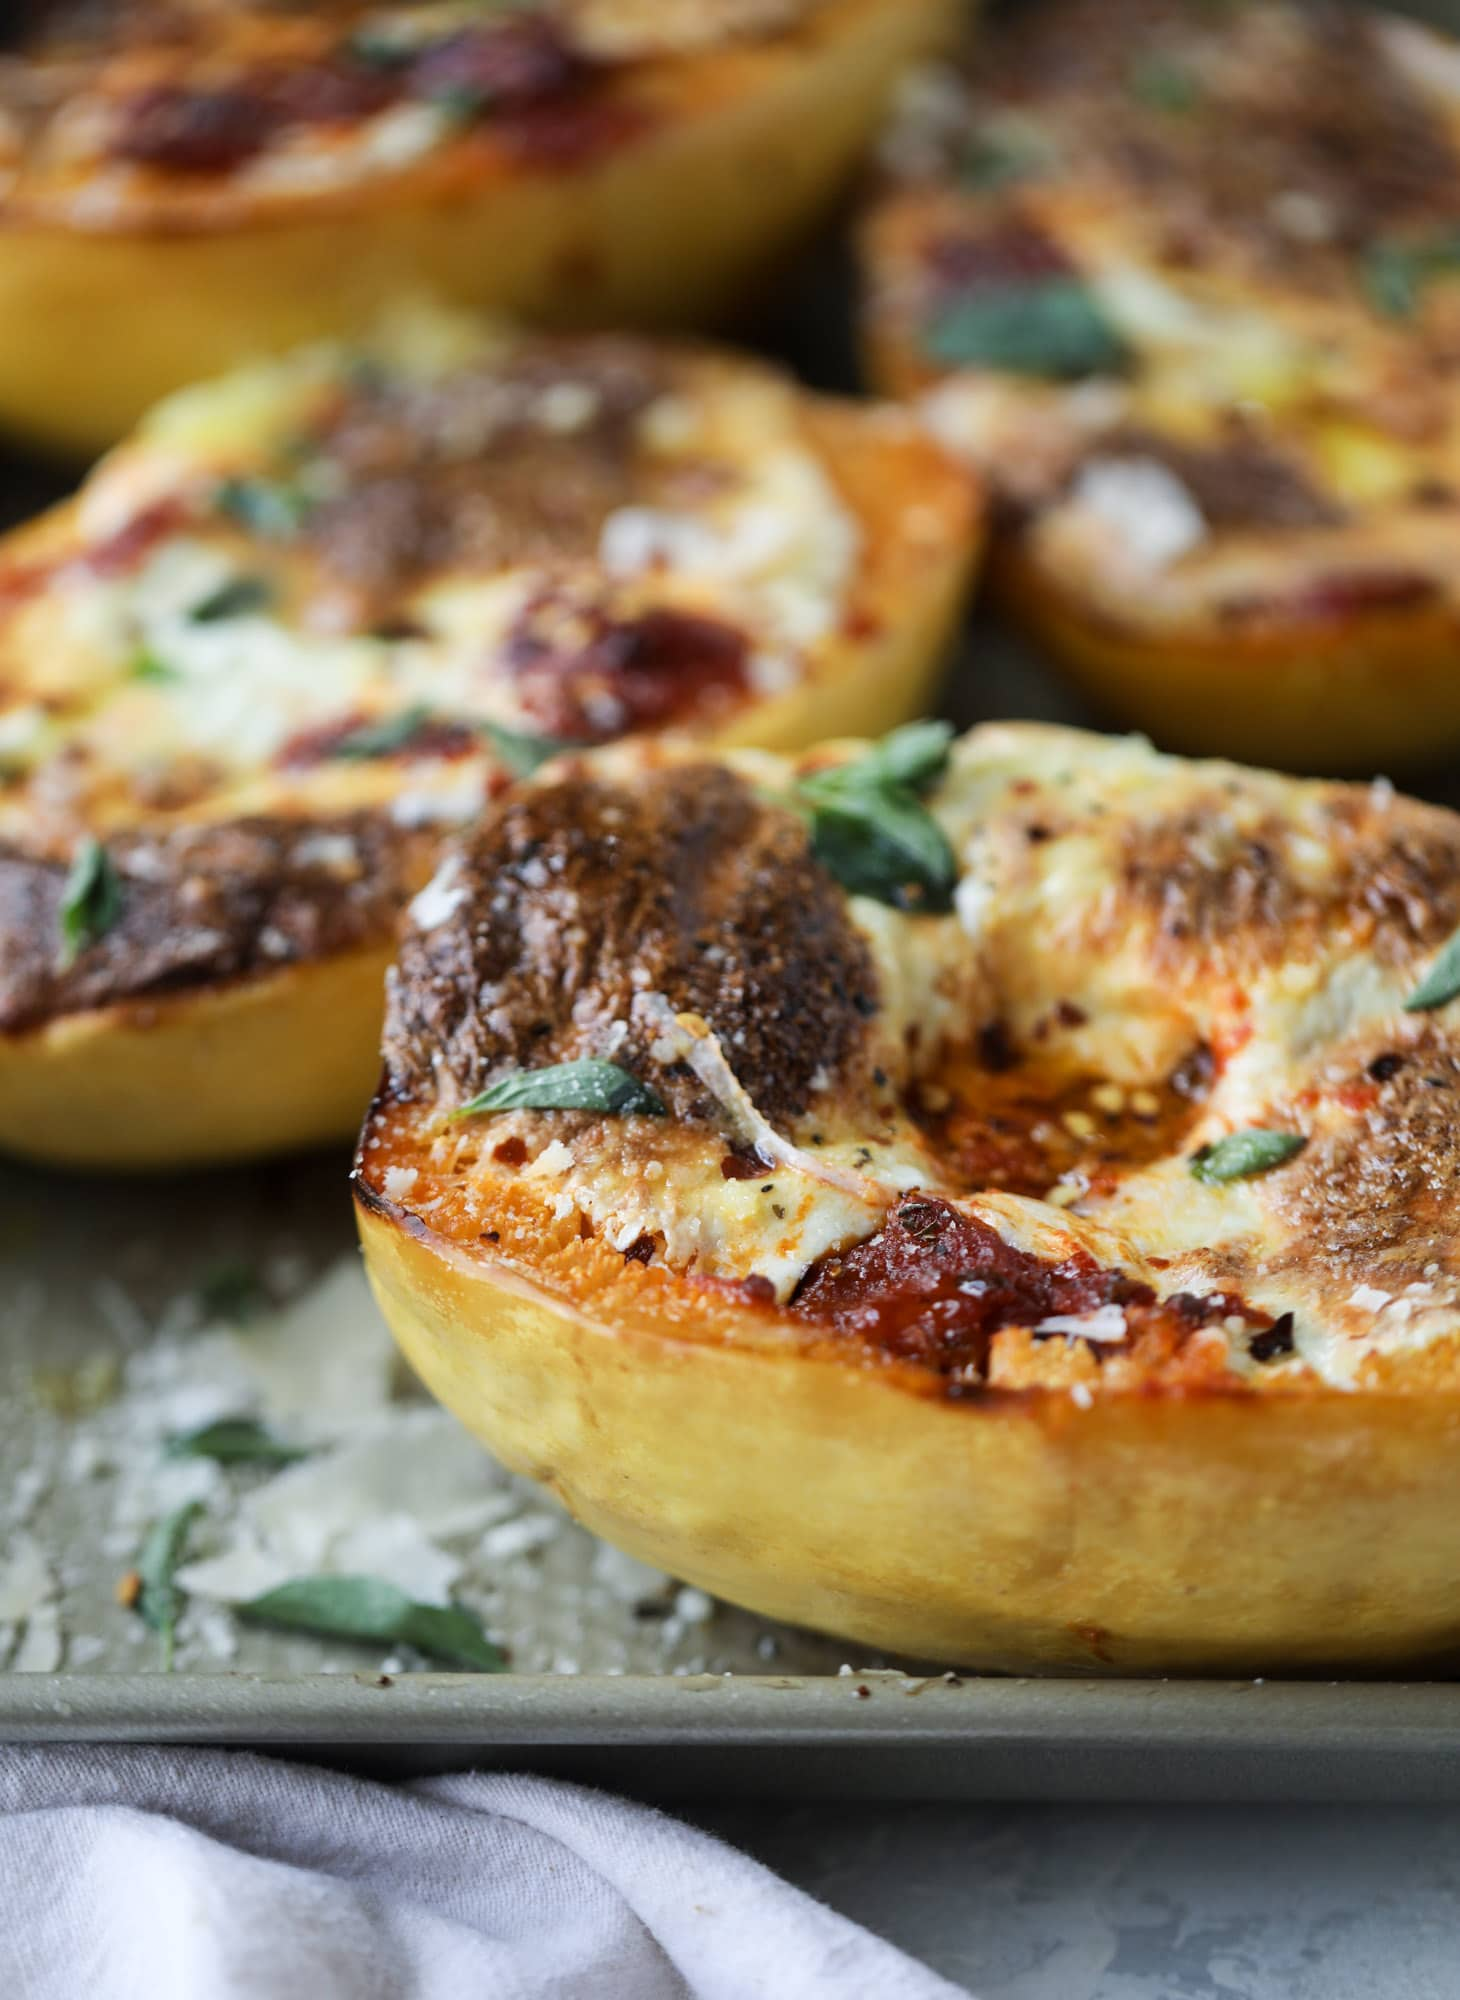 Spaghetti squash parmesan is a delicious weeknight meal! Topped with marinara or bolognese, melty cheese and fresh herbs, it's easy and delicious! I howsweeteats.com #spaghettisquash #parmesan